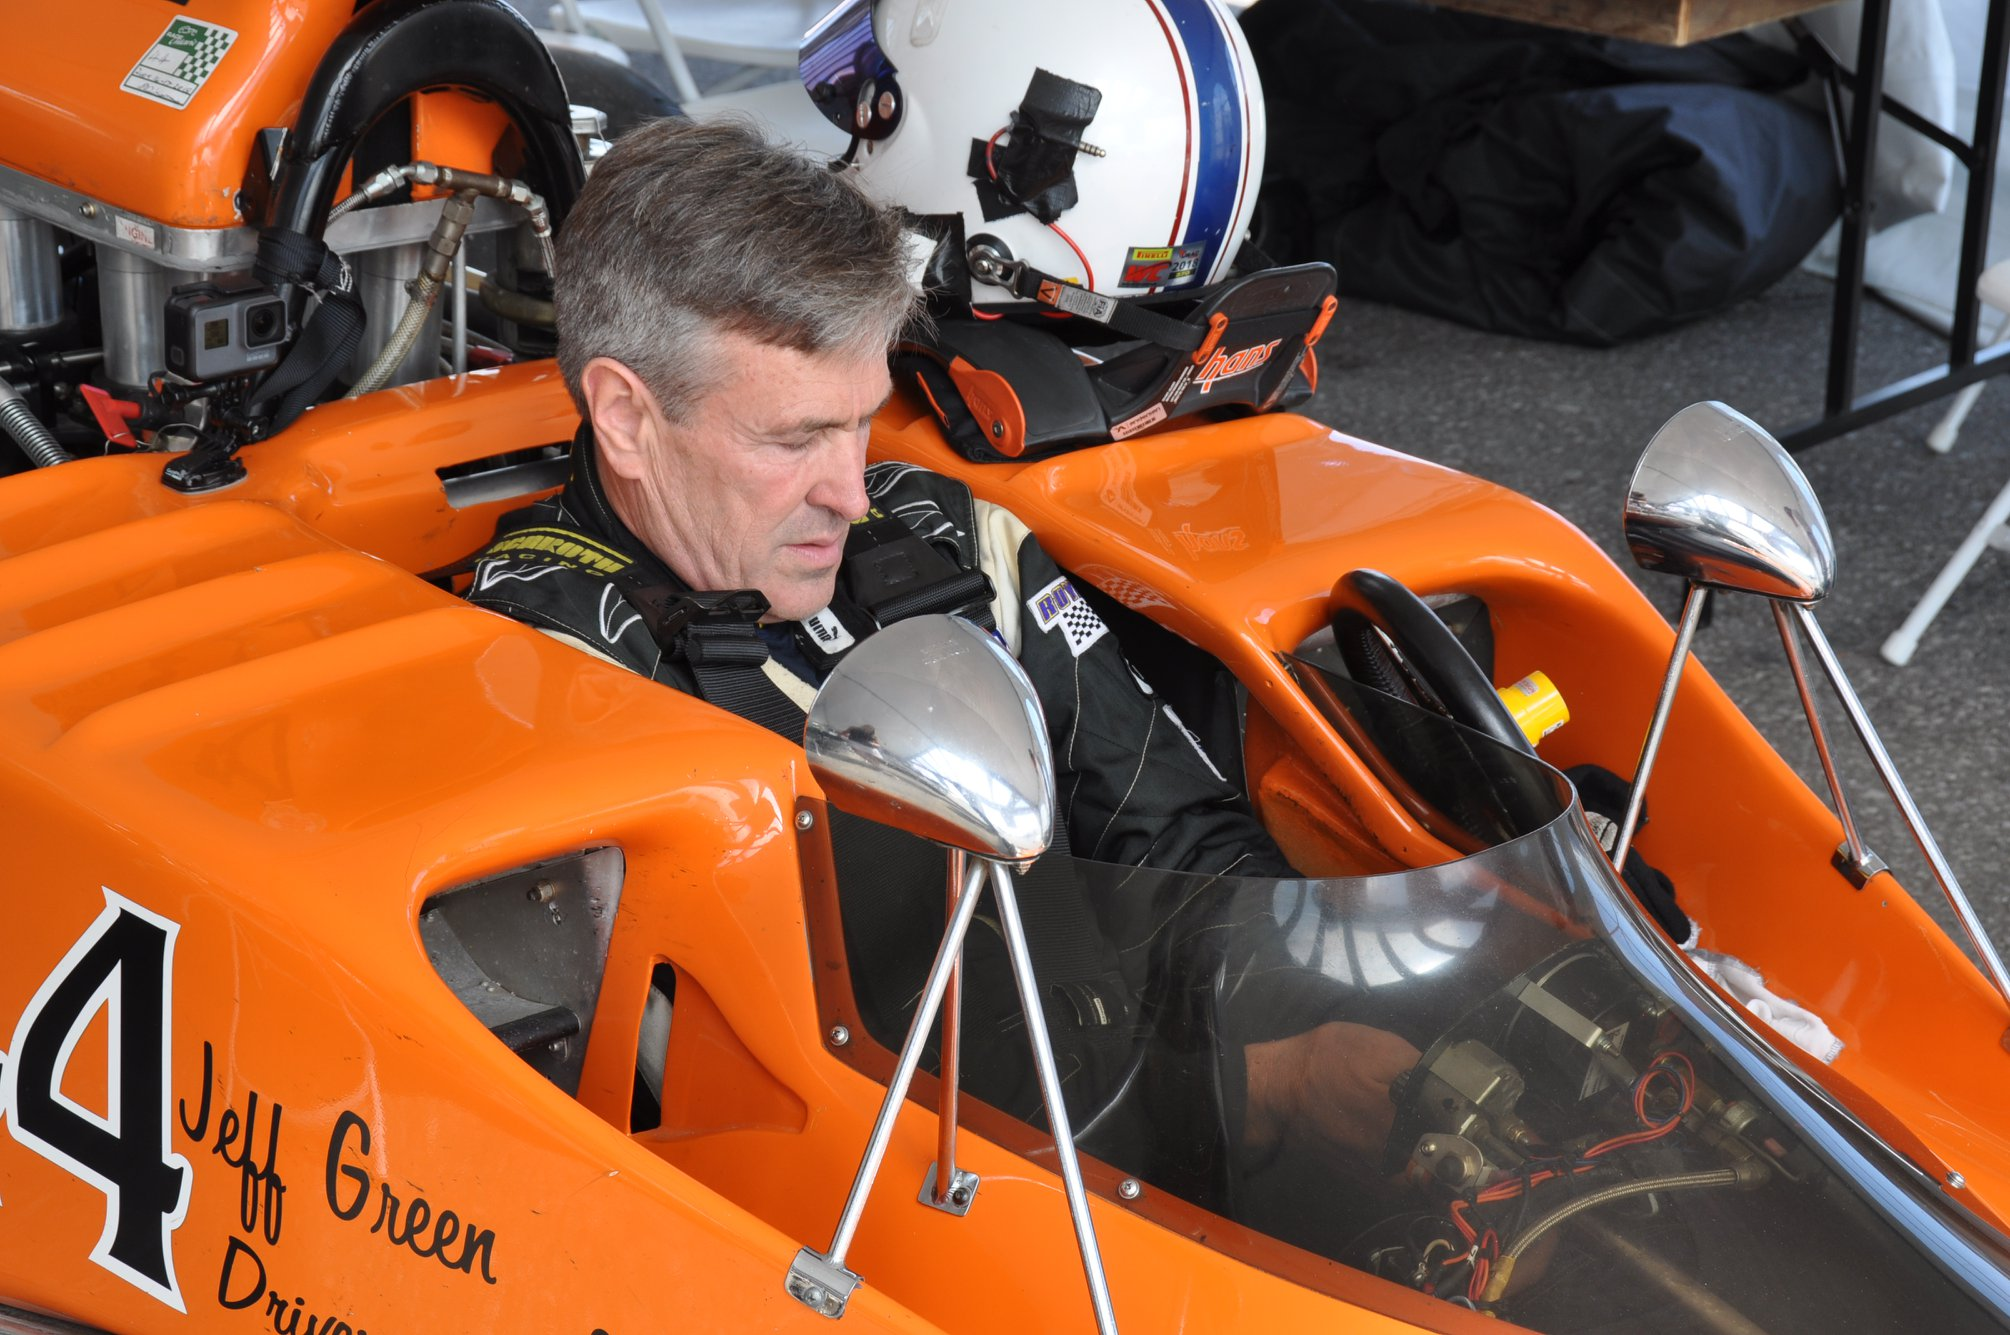 In A Photo Taken By Fellow Racecar Driver Doug Barr, Jeff Green Prepared To  Qualify For A Formula 5000 Vintage Race At Canadian Tire Motorsport Park In  ...